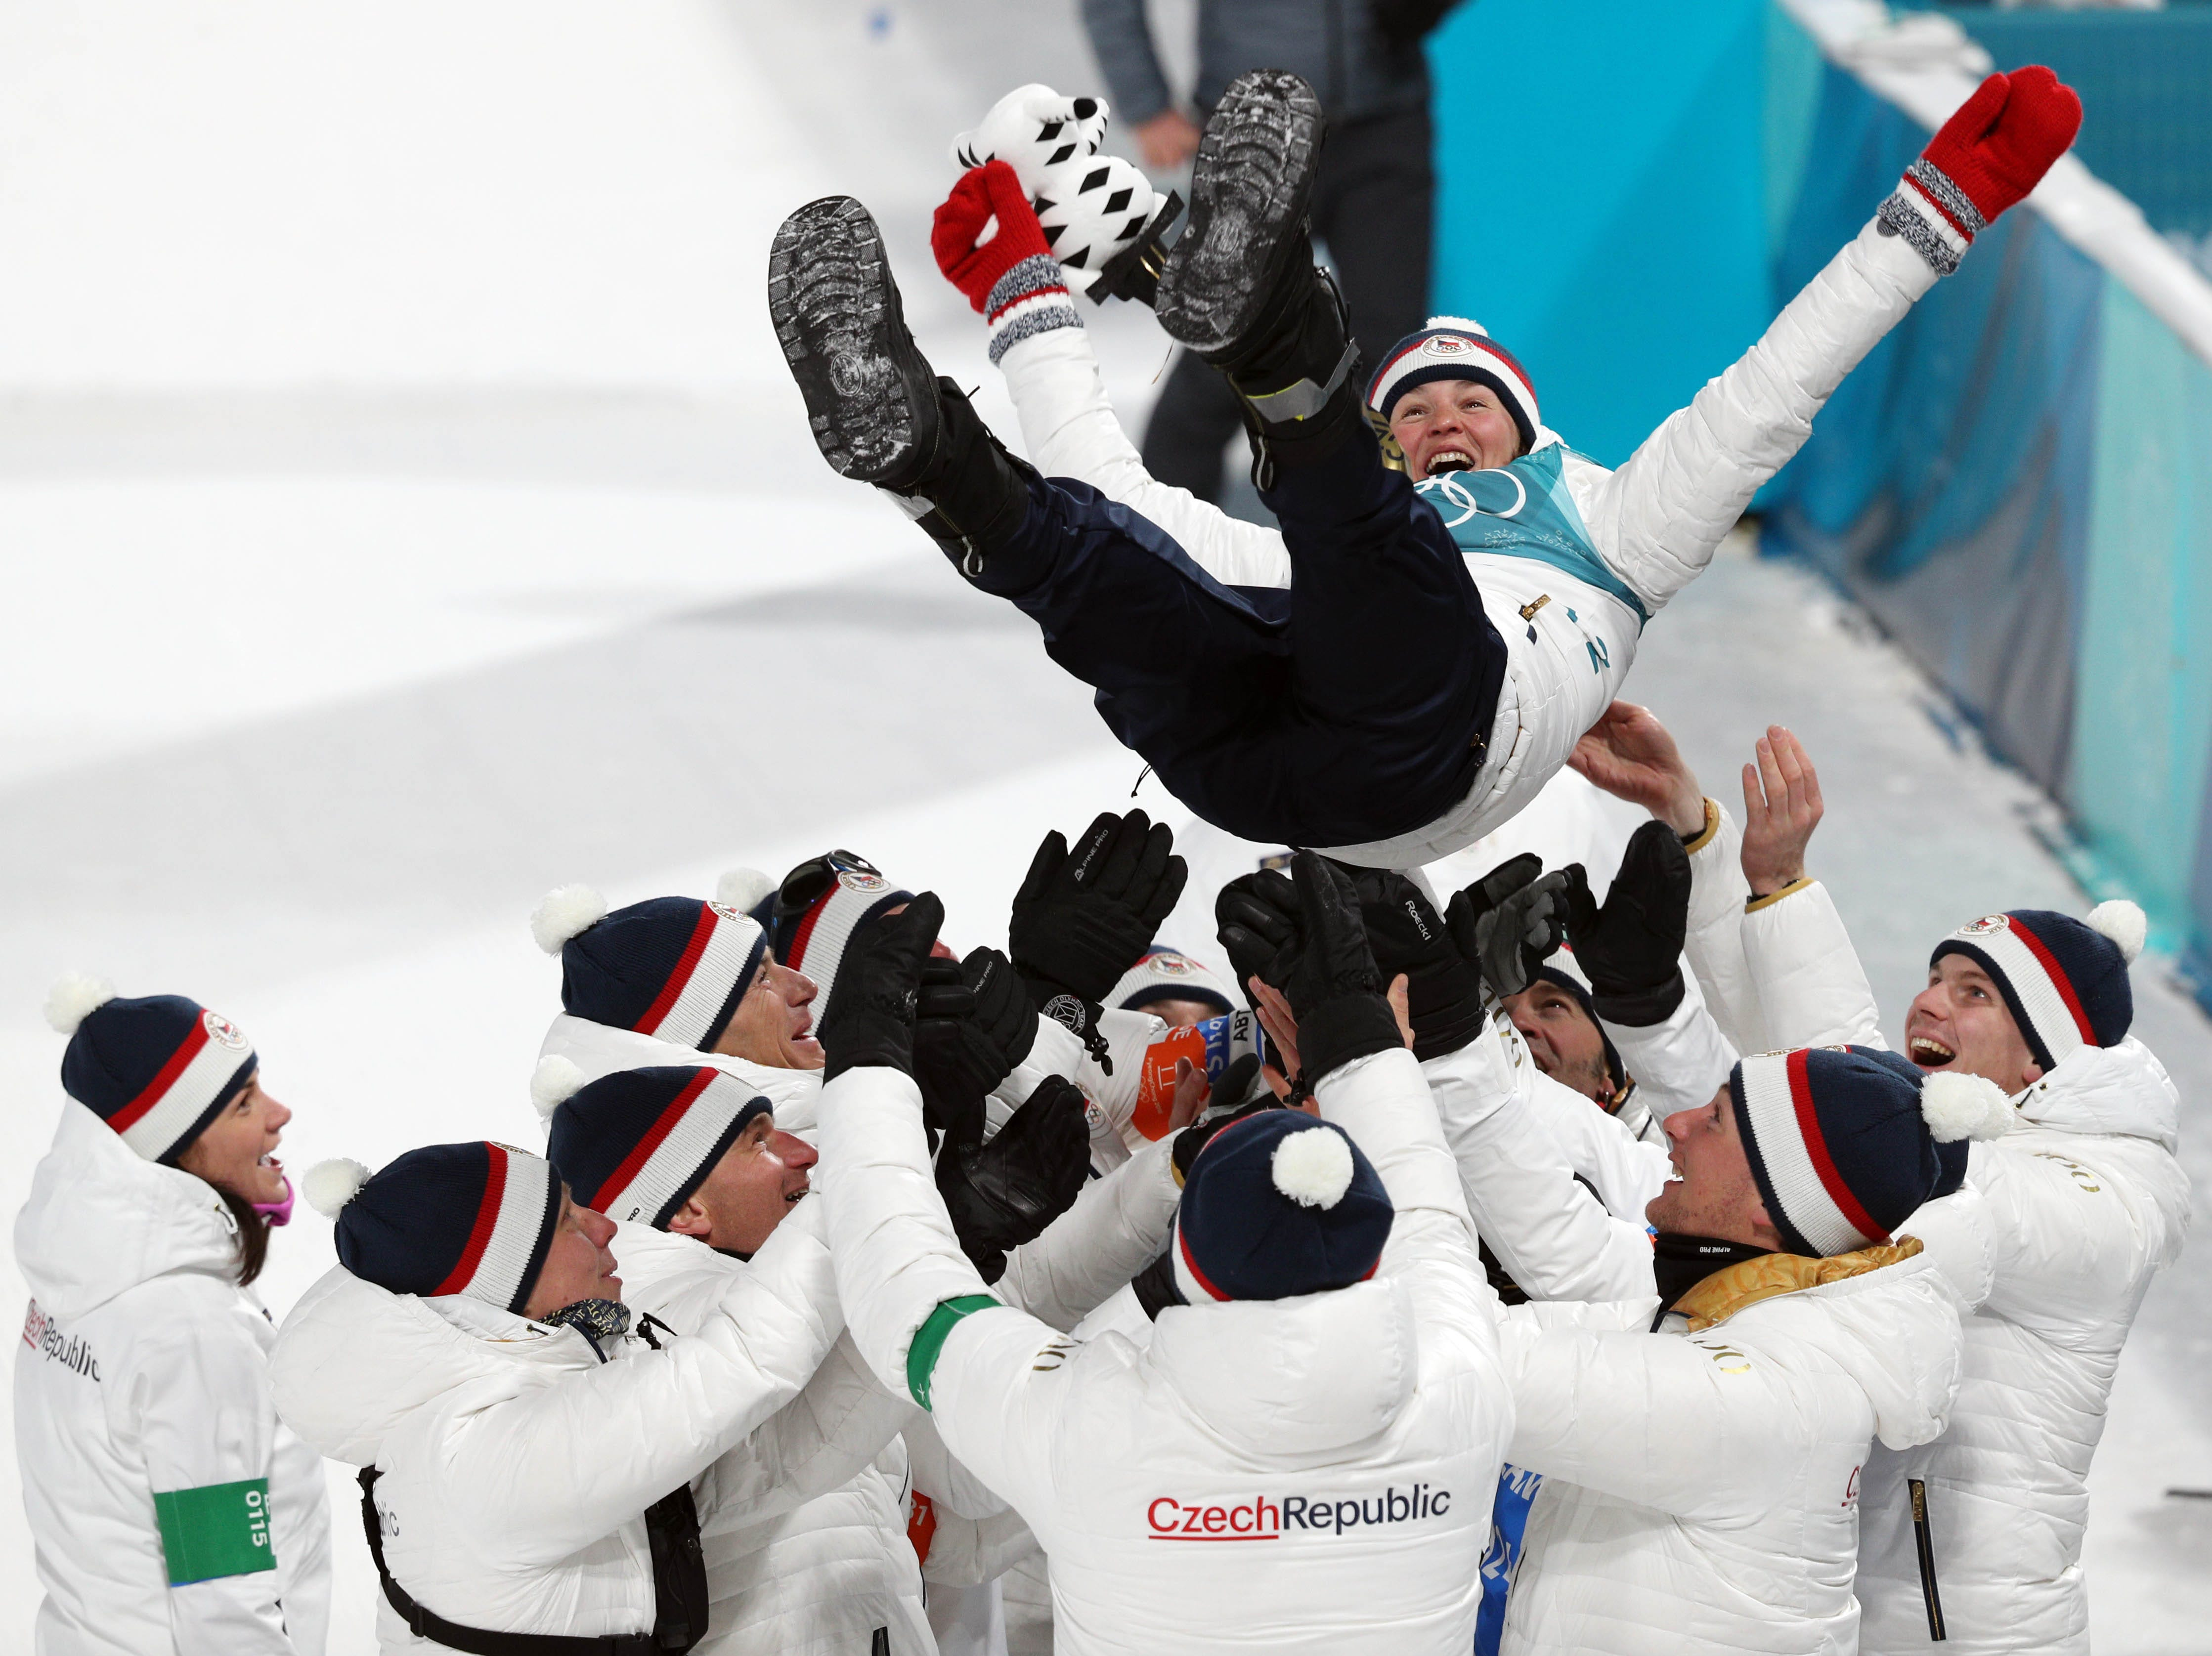 Feb. 10: Veronika Vitkova (CZE) celebrates with her team after winning the bronze medal in the women's biathlon 7.5km sprint at the Pyeongchang Winter Games.